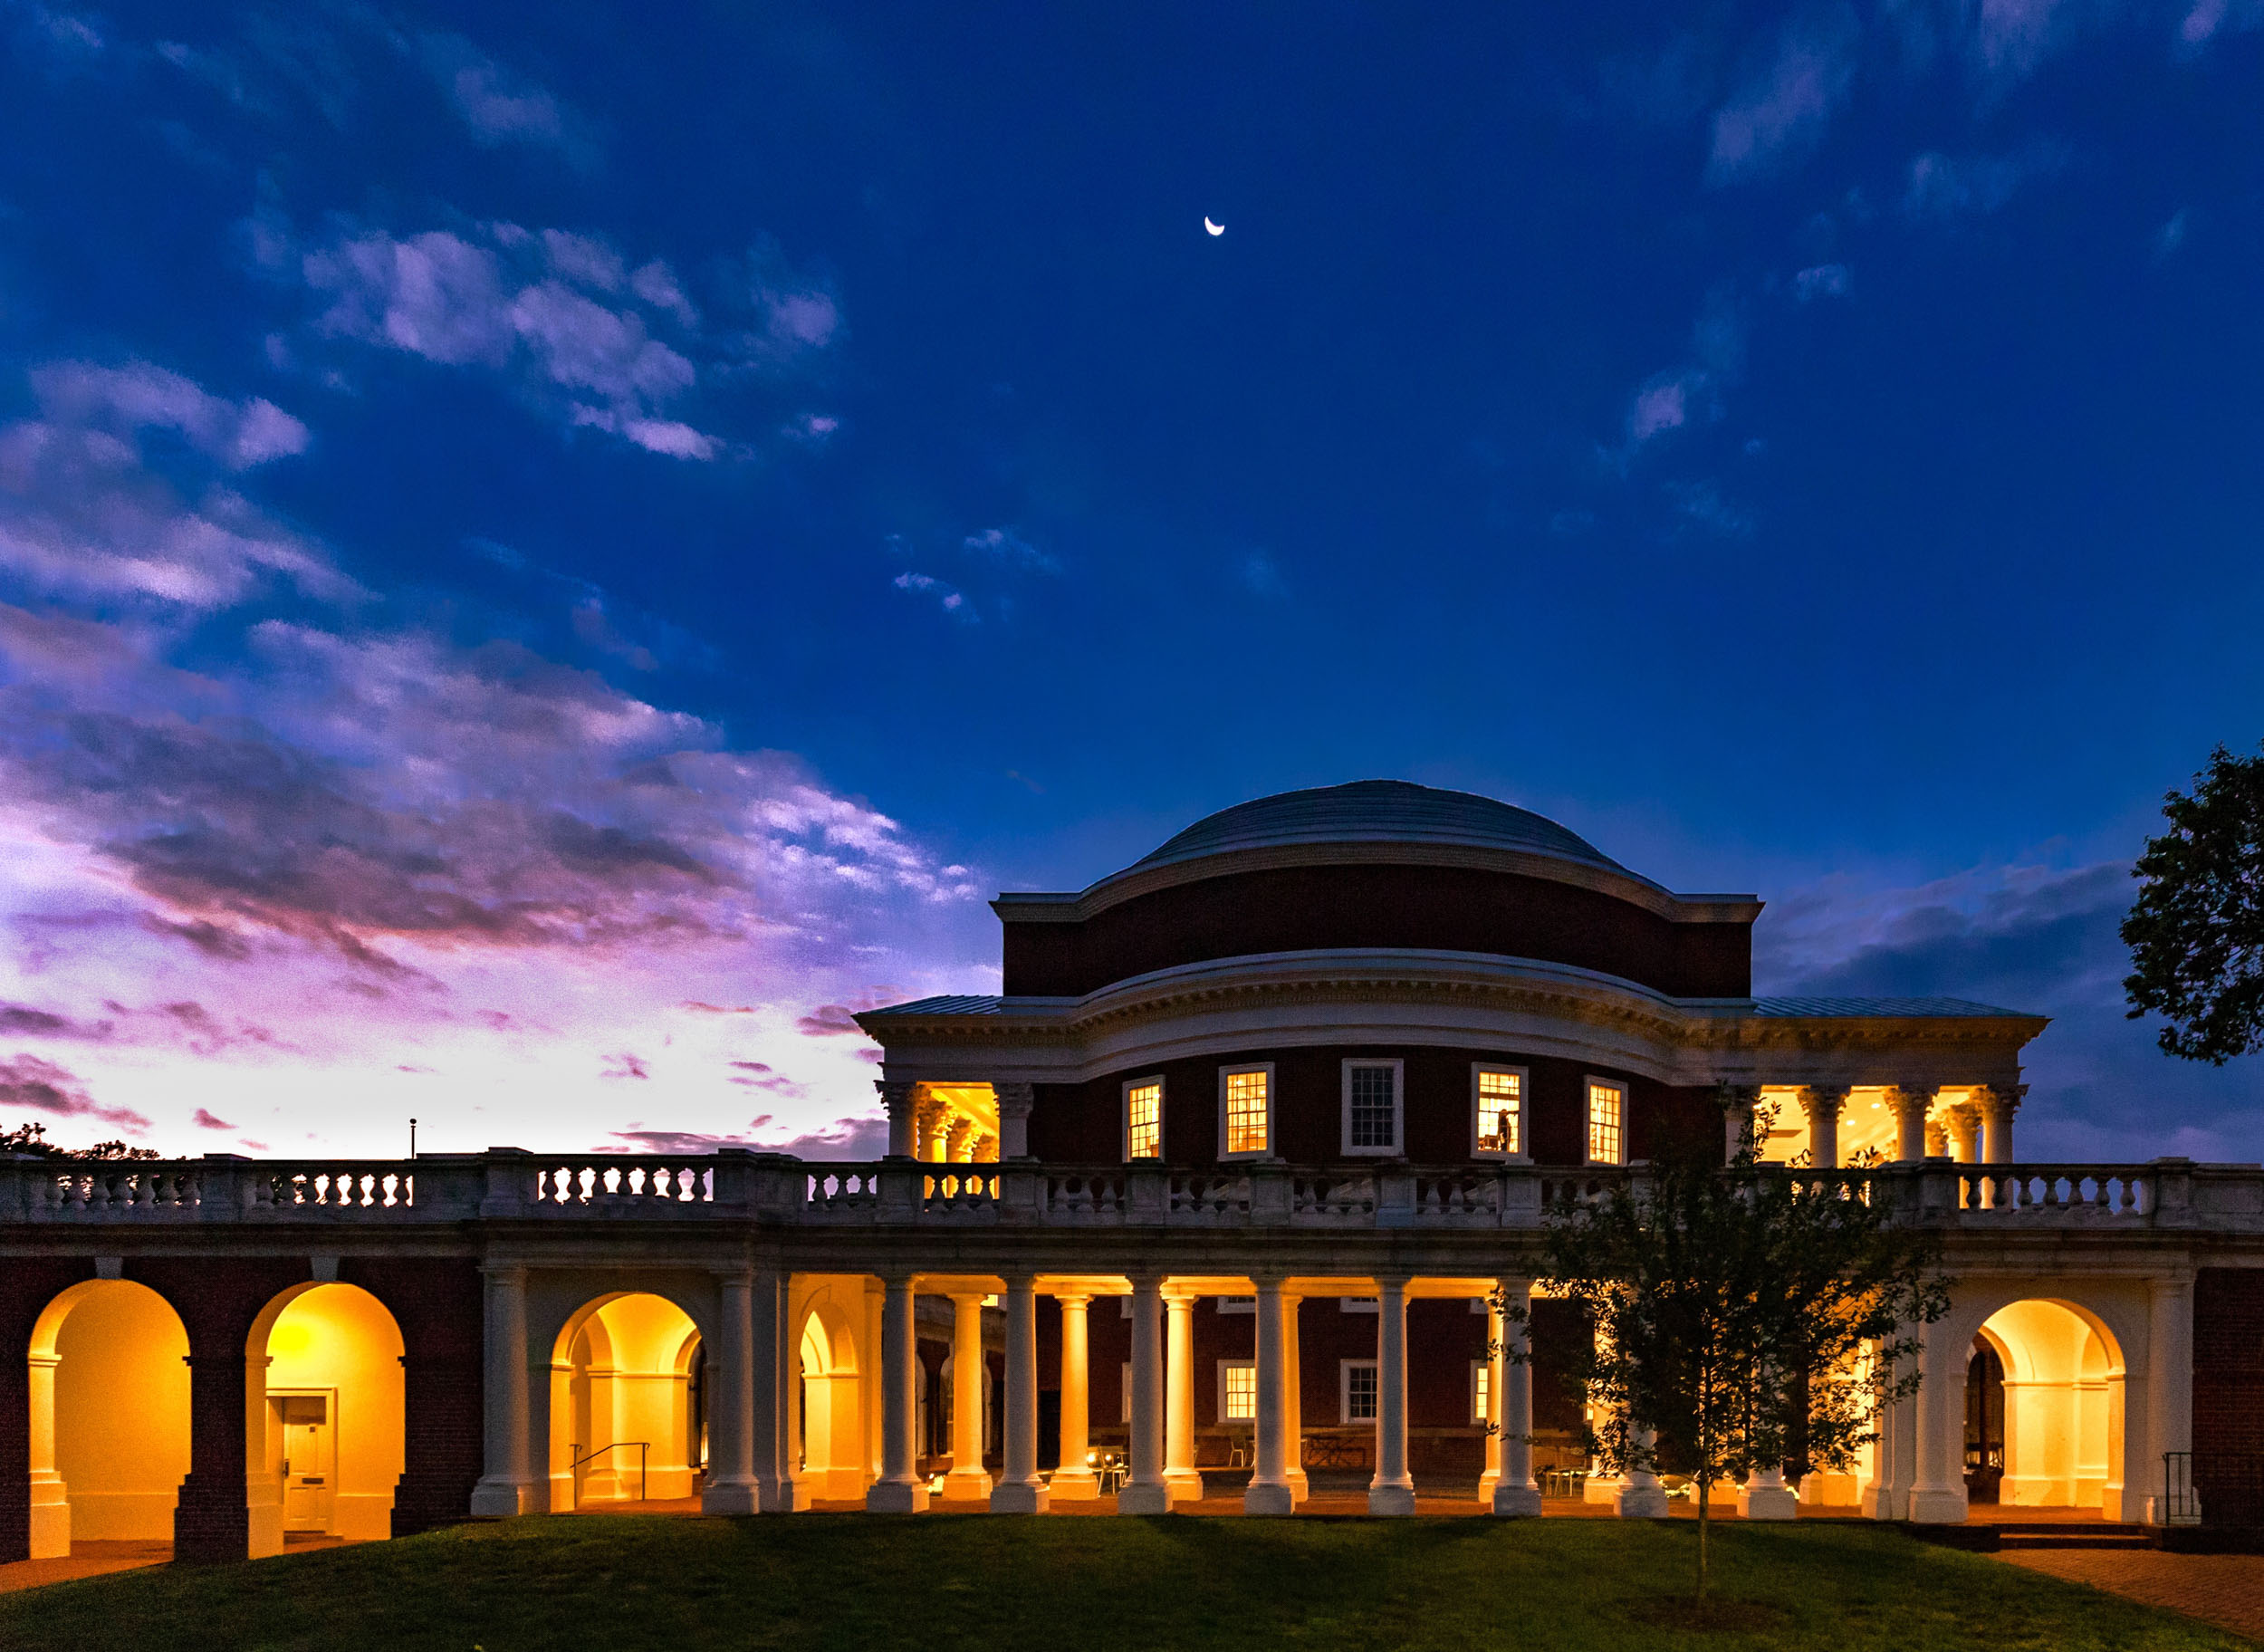 """The moon hangs above the Rotunda at sunrise, Crane's favorite time to photograph Grounds. """"The inky blue hour skies combined with the first hint of morning color make for a magnificent view,"""" he said. (Photo by Joshua Crane)"""